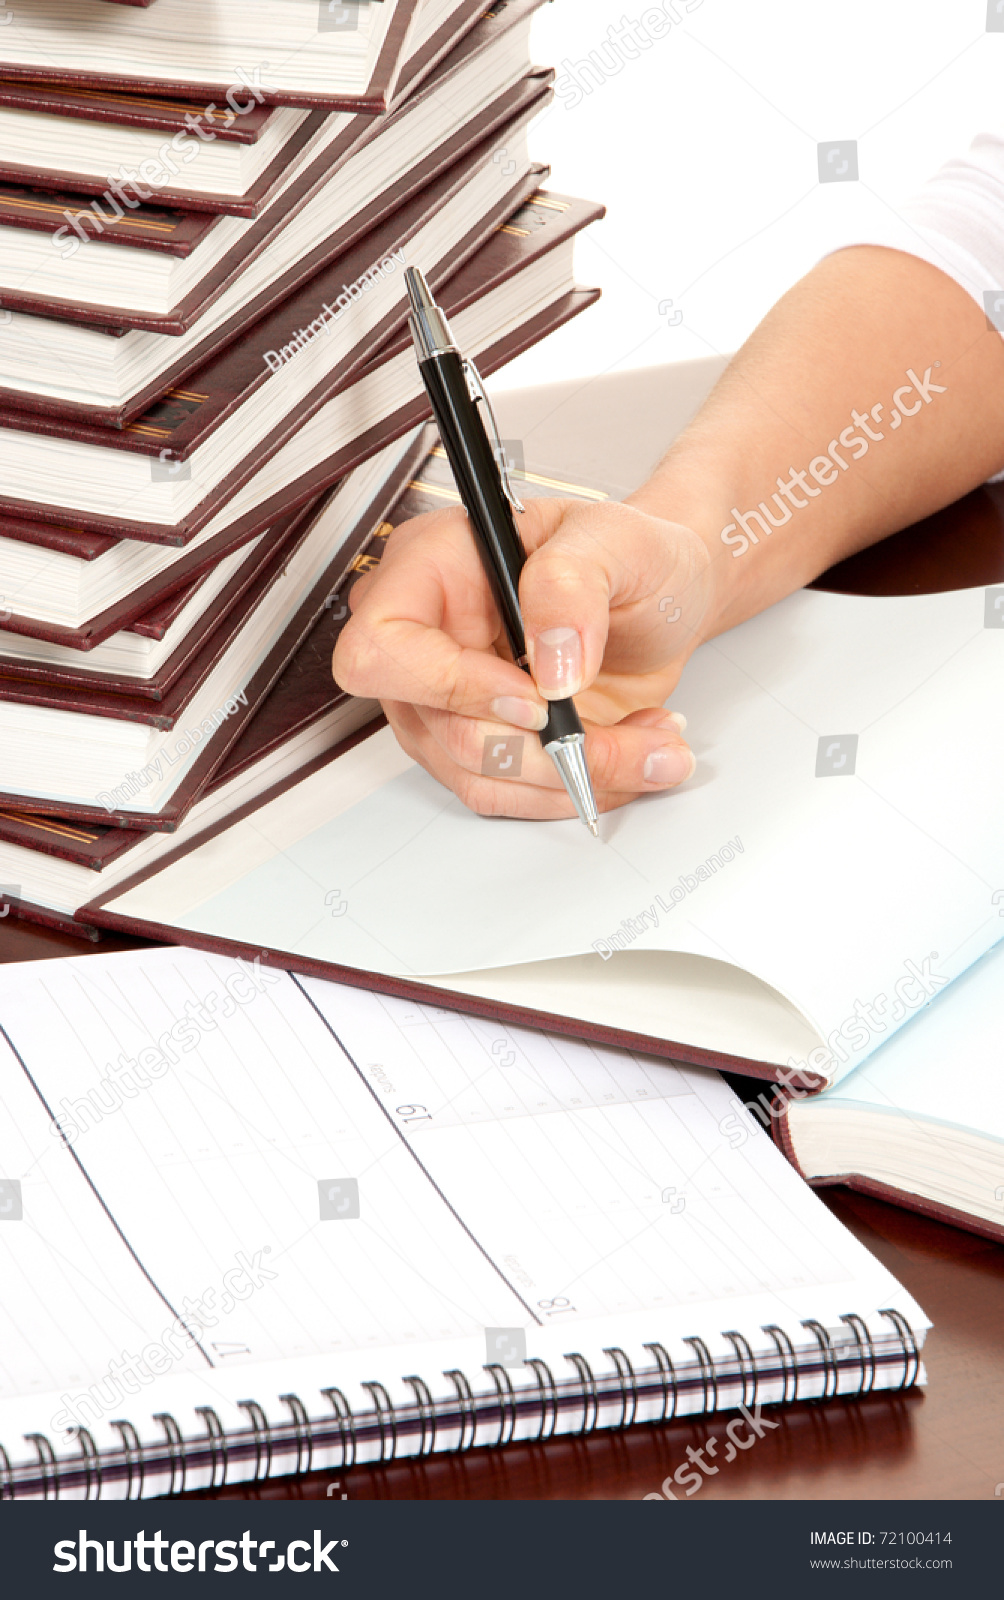 Writer business person hand with pen signing document. On the table stack  of books organizer